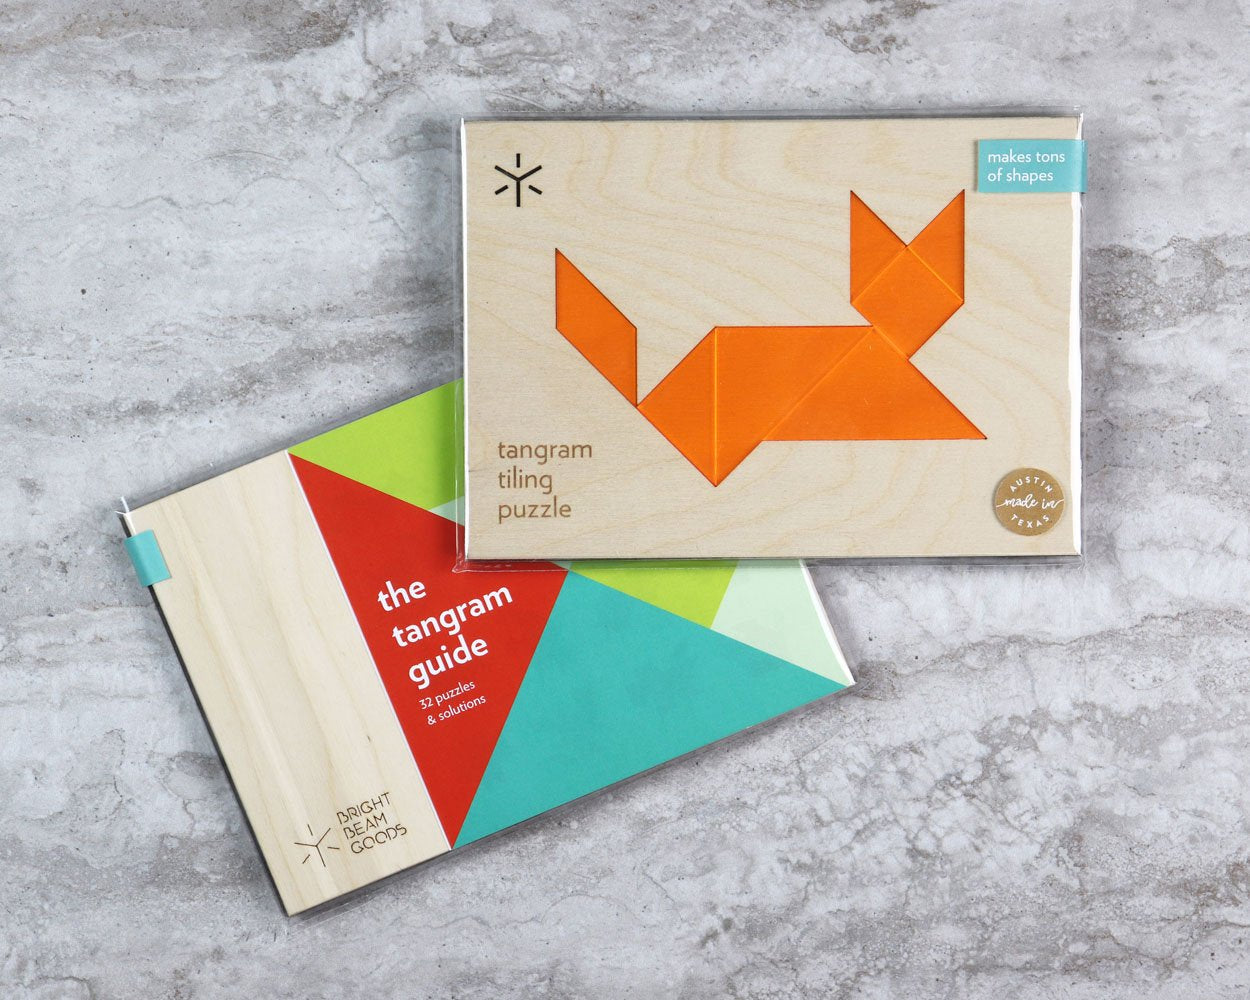 Cat tangram puzzle in packaging